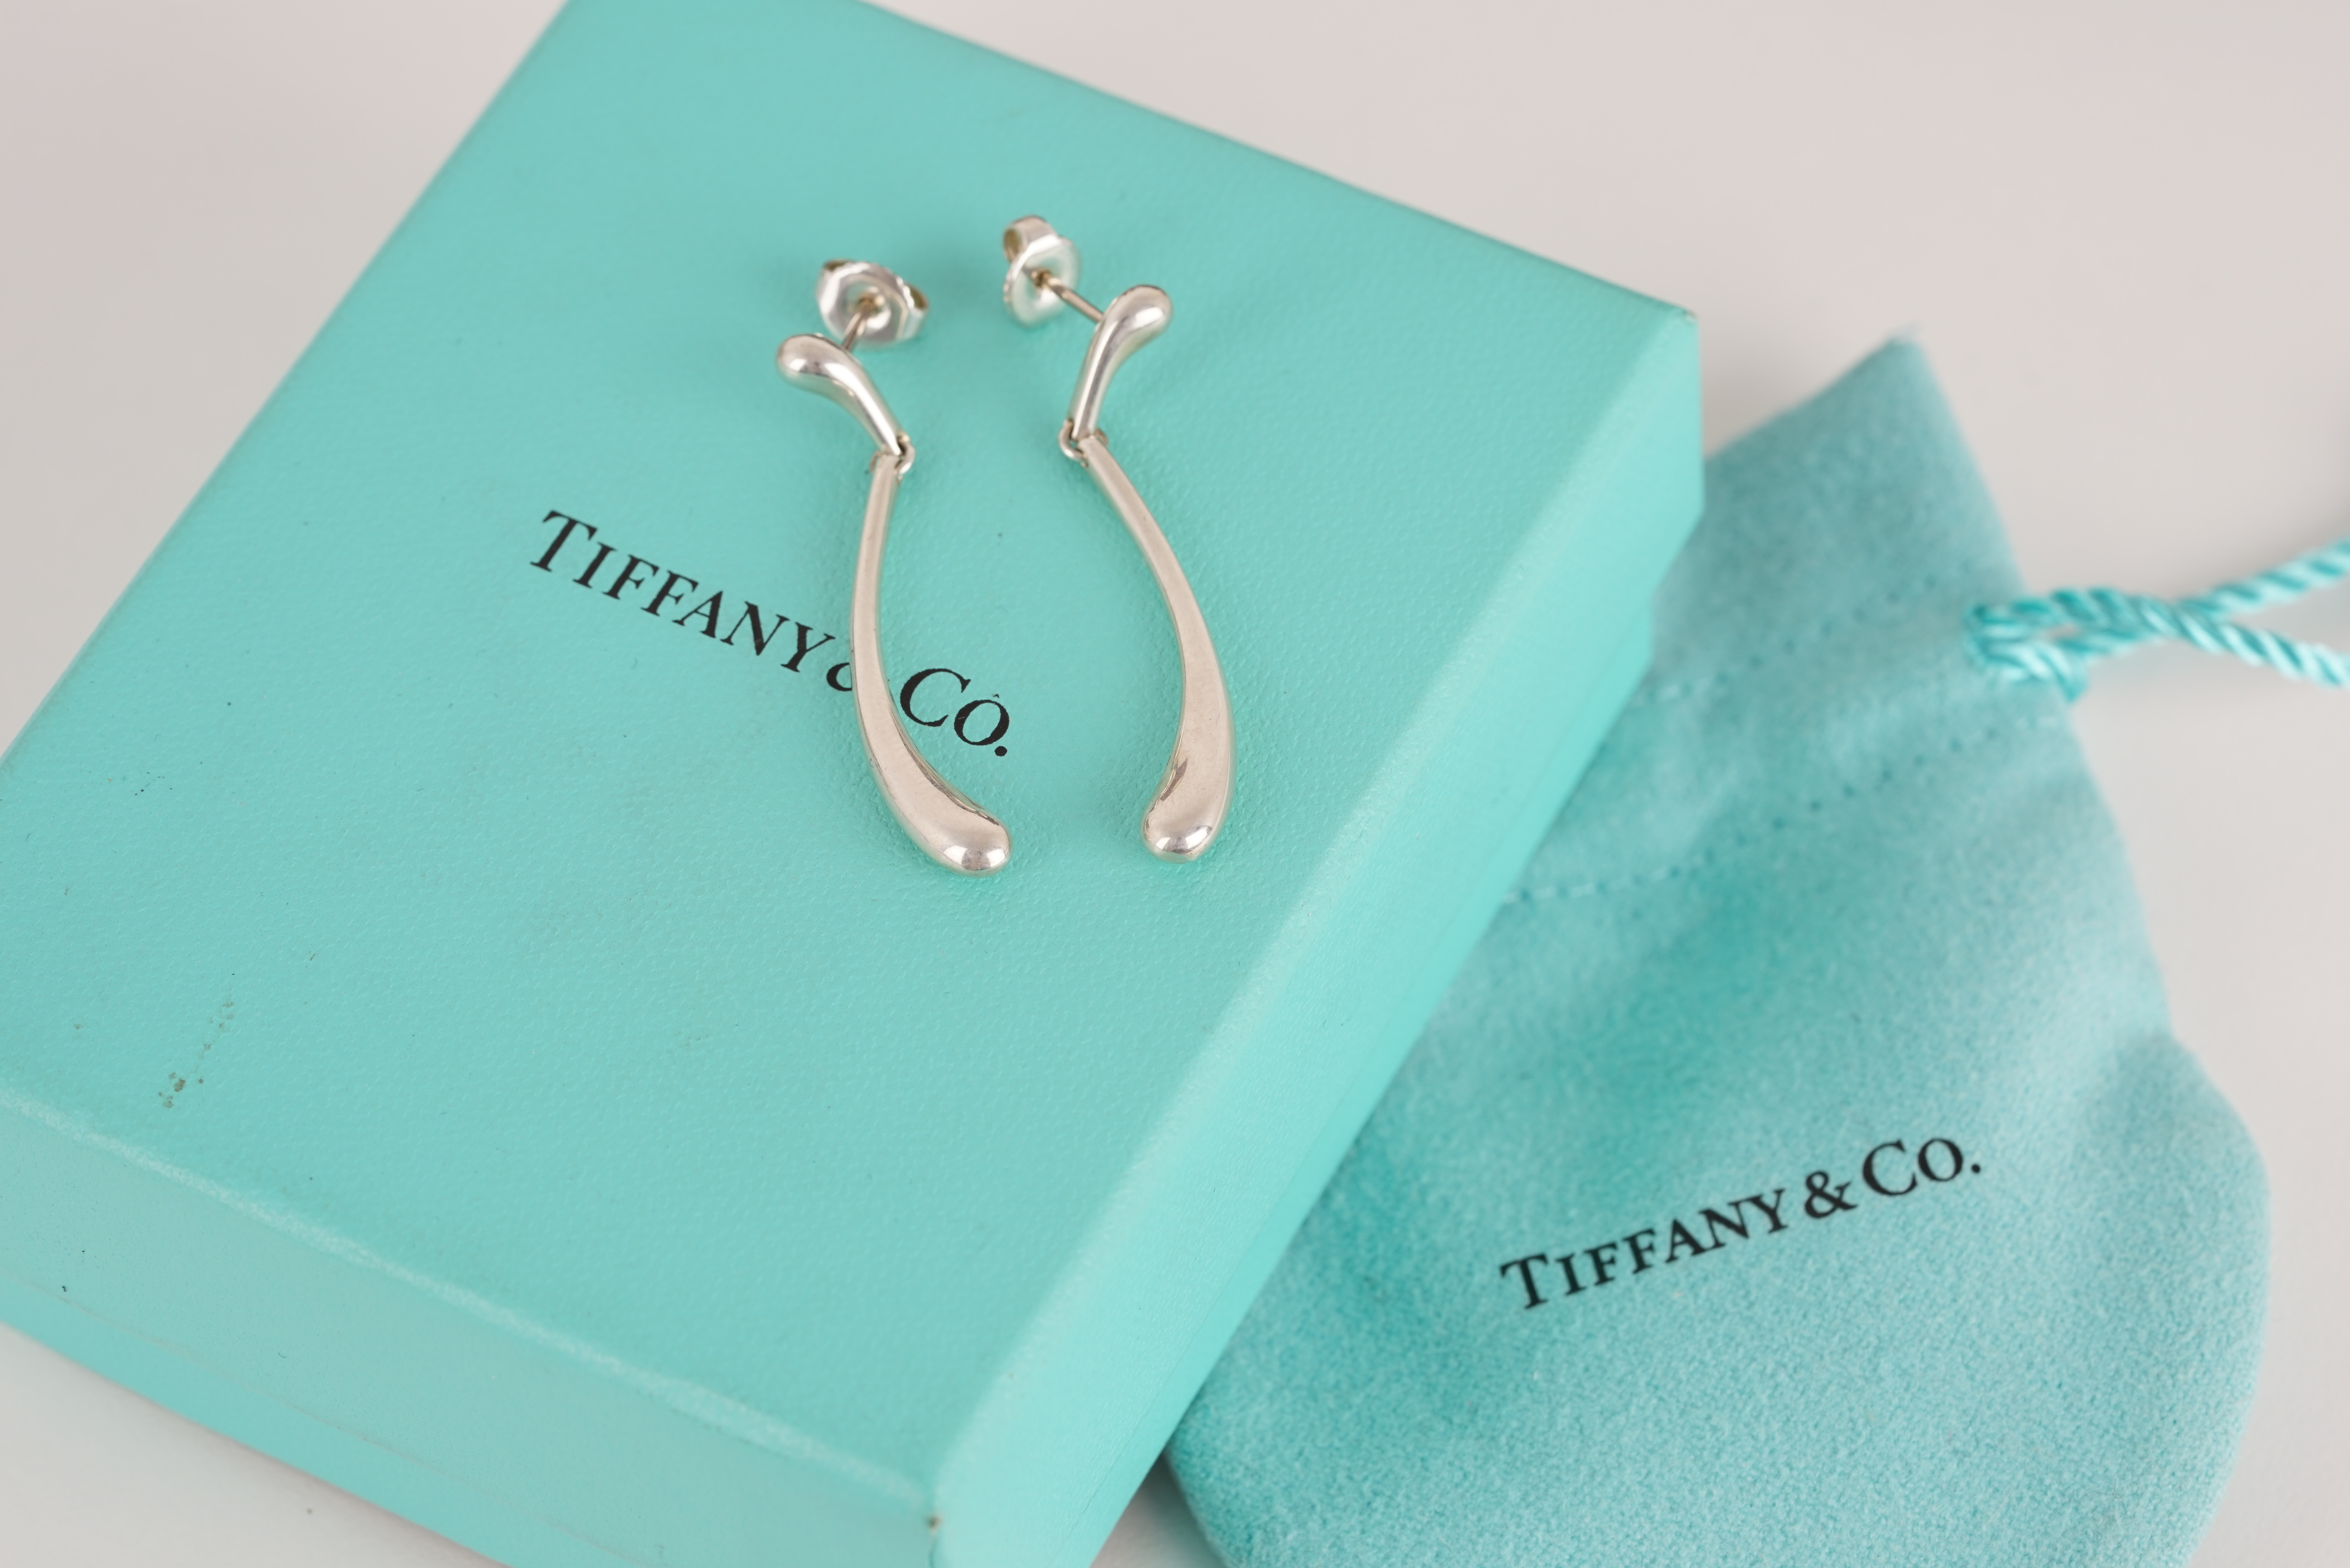 PAIR OF TIFFANY & CO ELSA PERETTI DROP EARRINGS W/ BOX & POUCH, tiffany and co earrings designed - Image 2 of 2